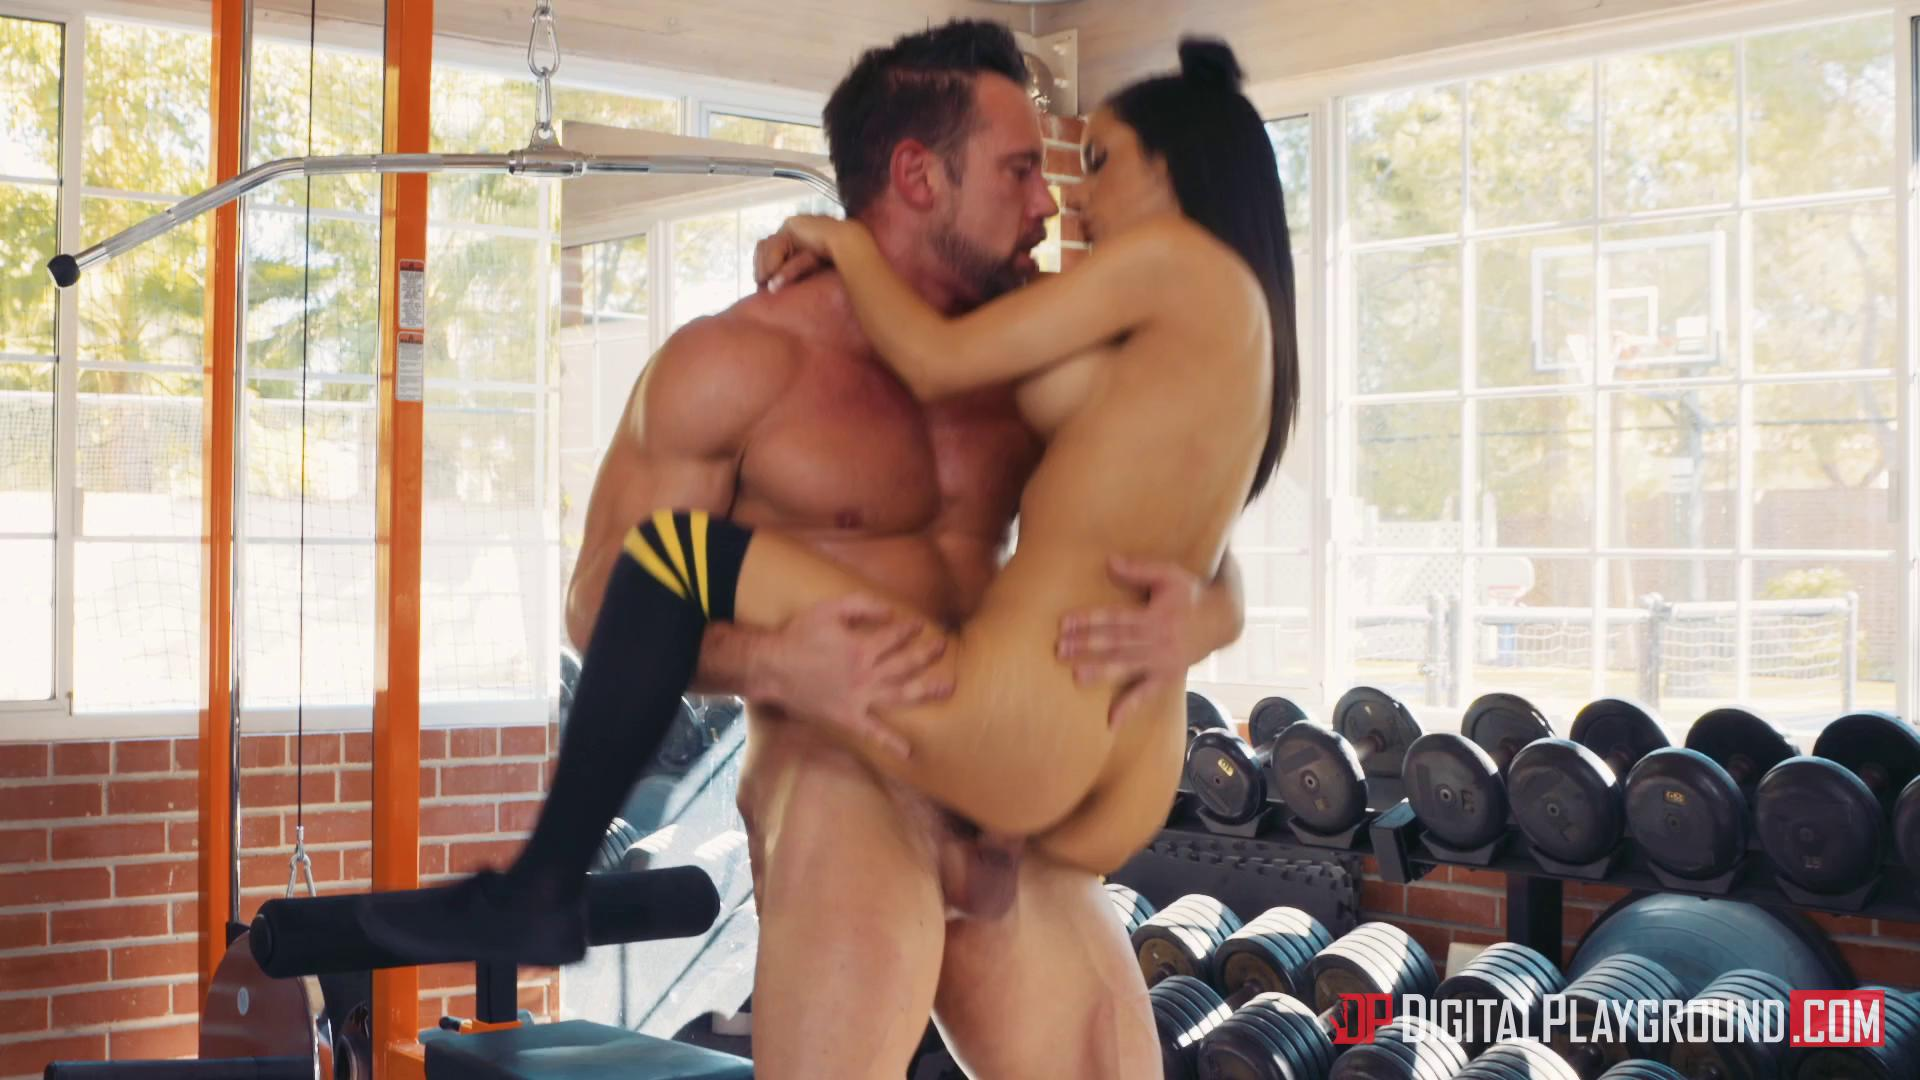 DigitalPlayground – Tia Cyrus Barbell Boobs